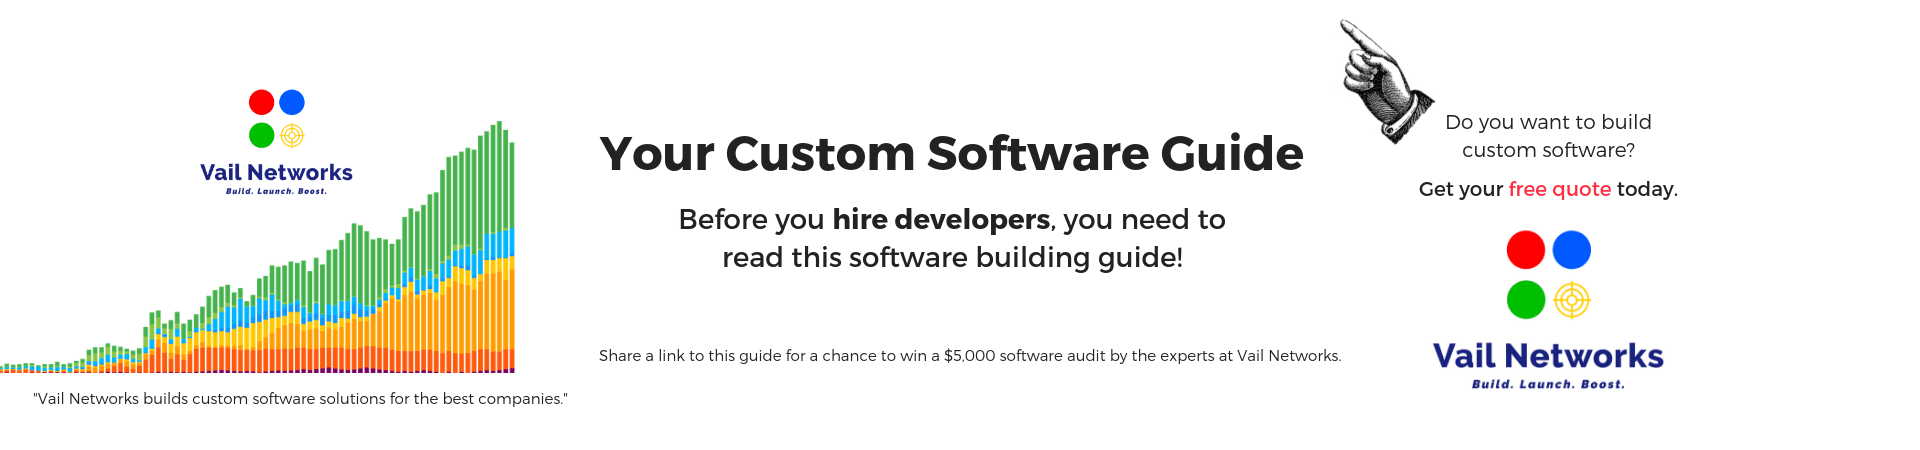 Software Developer Companies In Custom Software Development How To Hire Software Developers